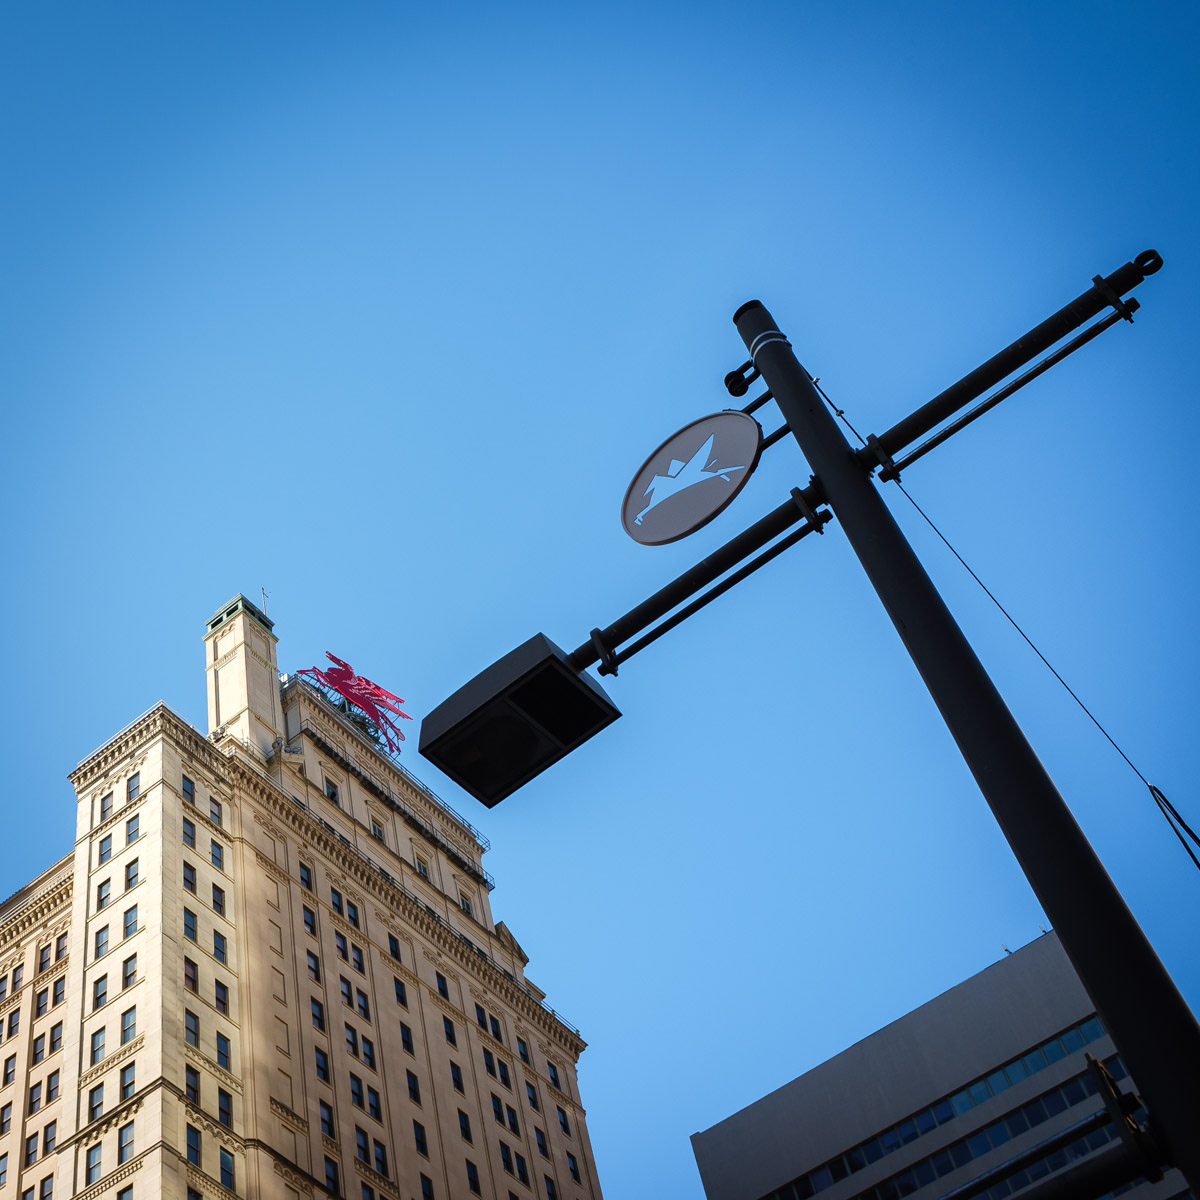 A stylized pegasus on a streetlight pole and the classic pegasus sign atop the Magnolia Hotel in Downtown Dallas.